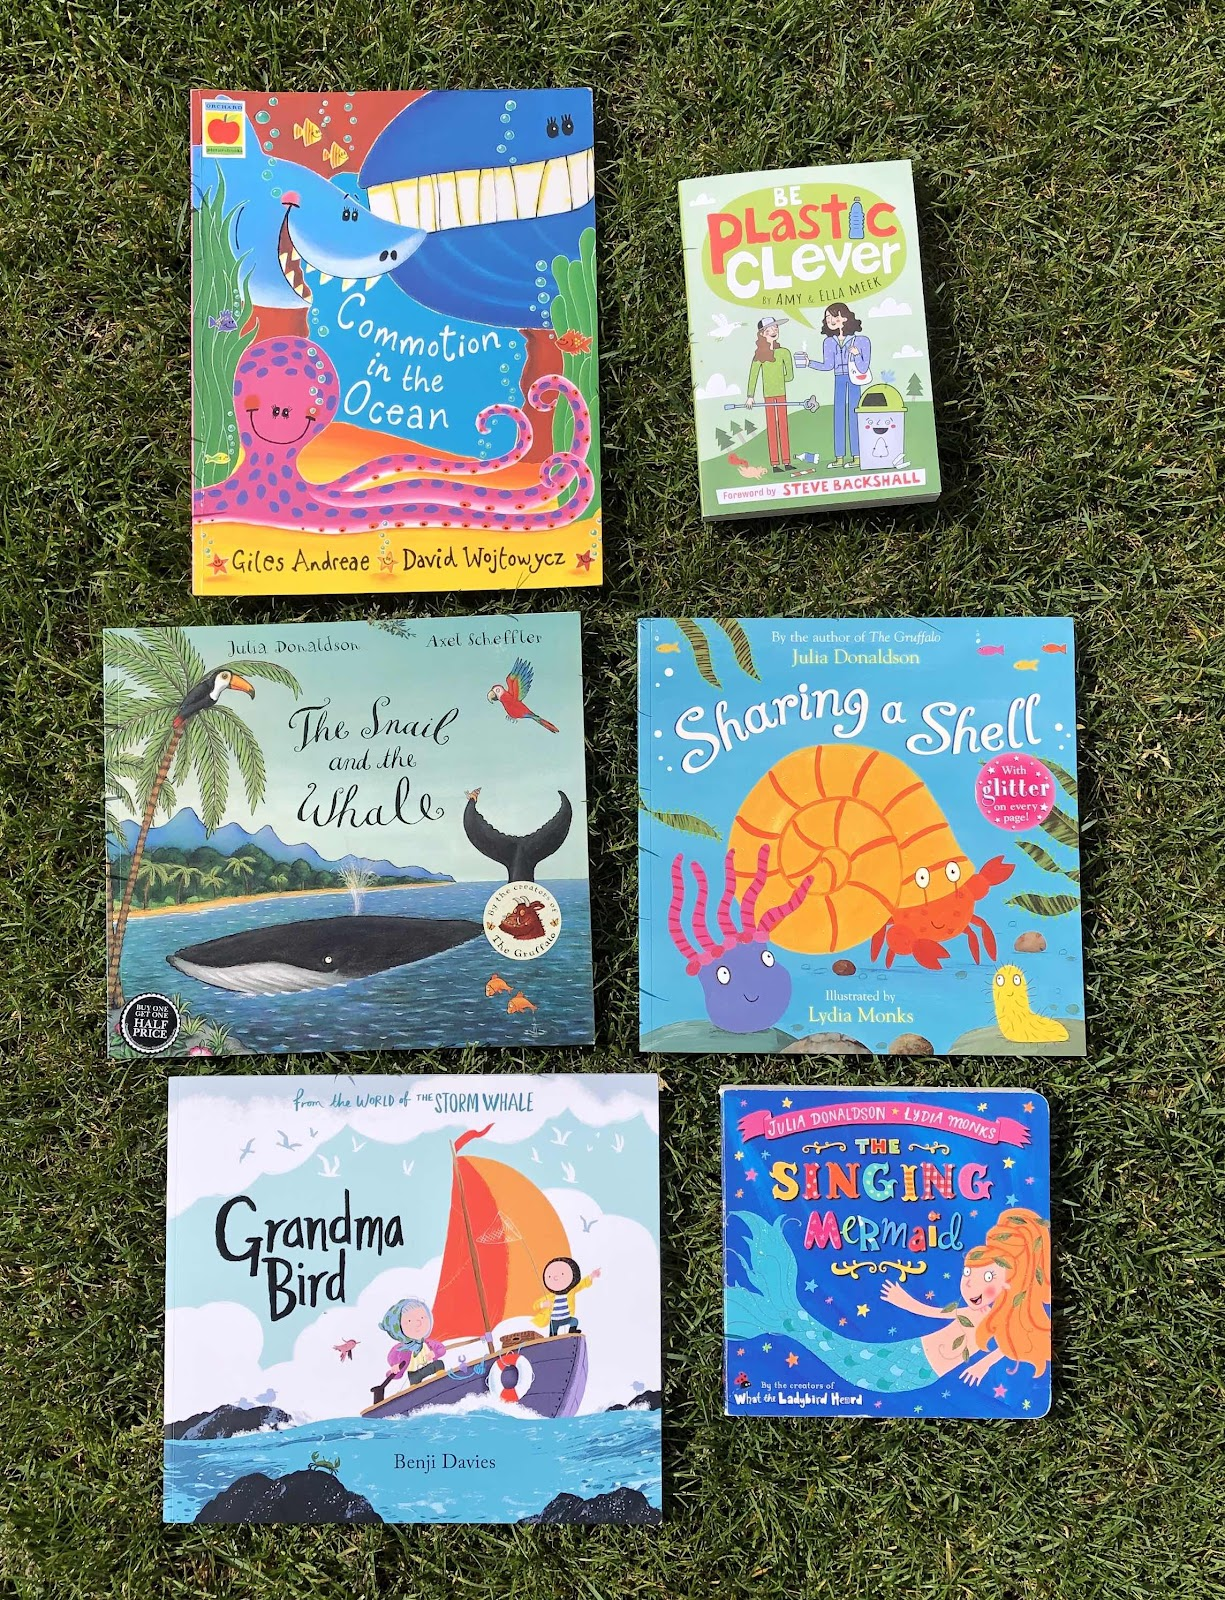 Ocean children's books